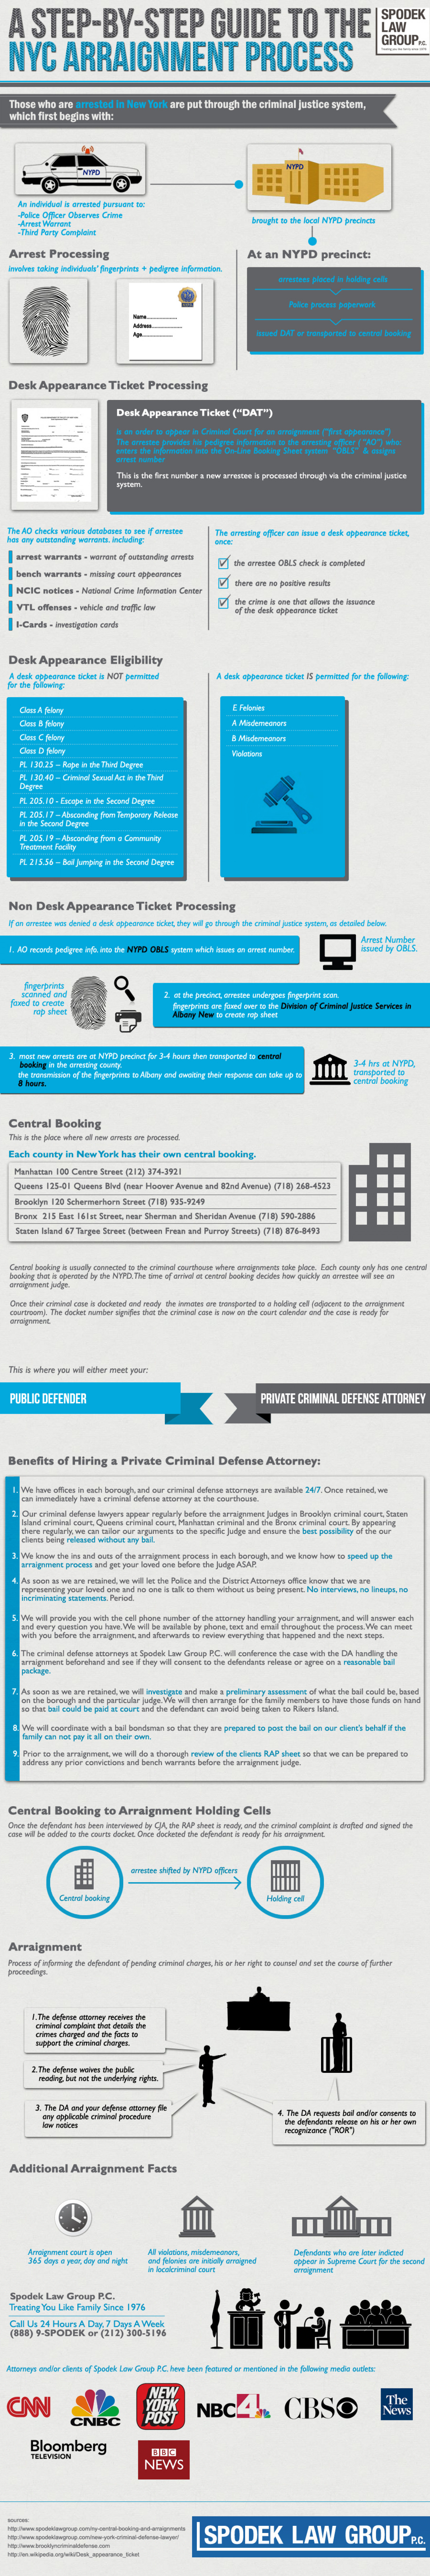 A Step-By-Step Guide to the NYC Arraignment Process Infographic